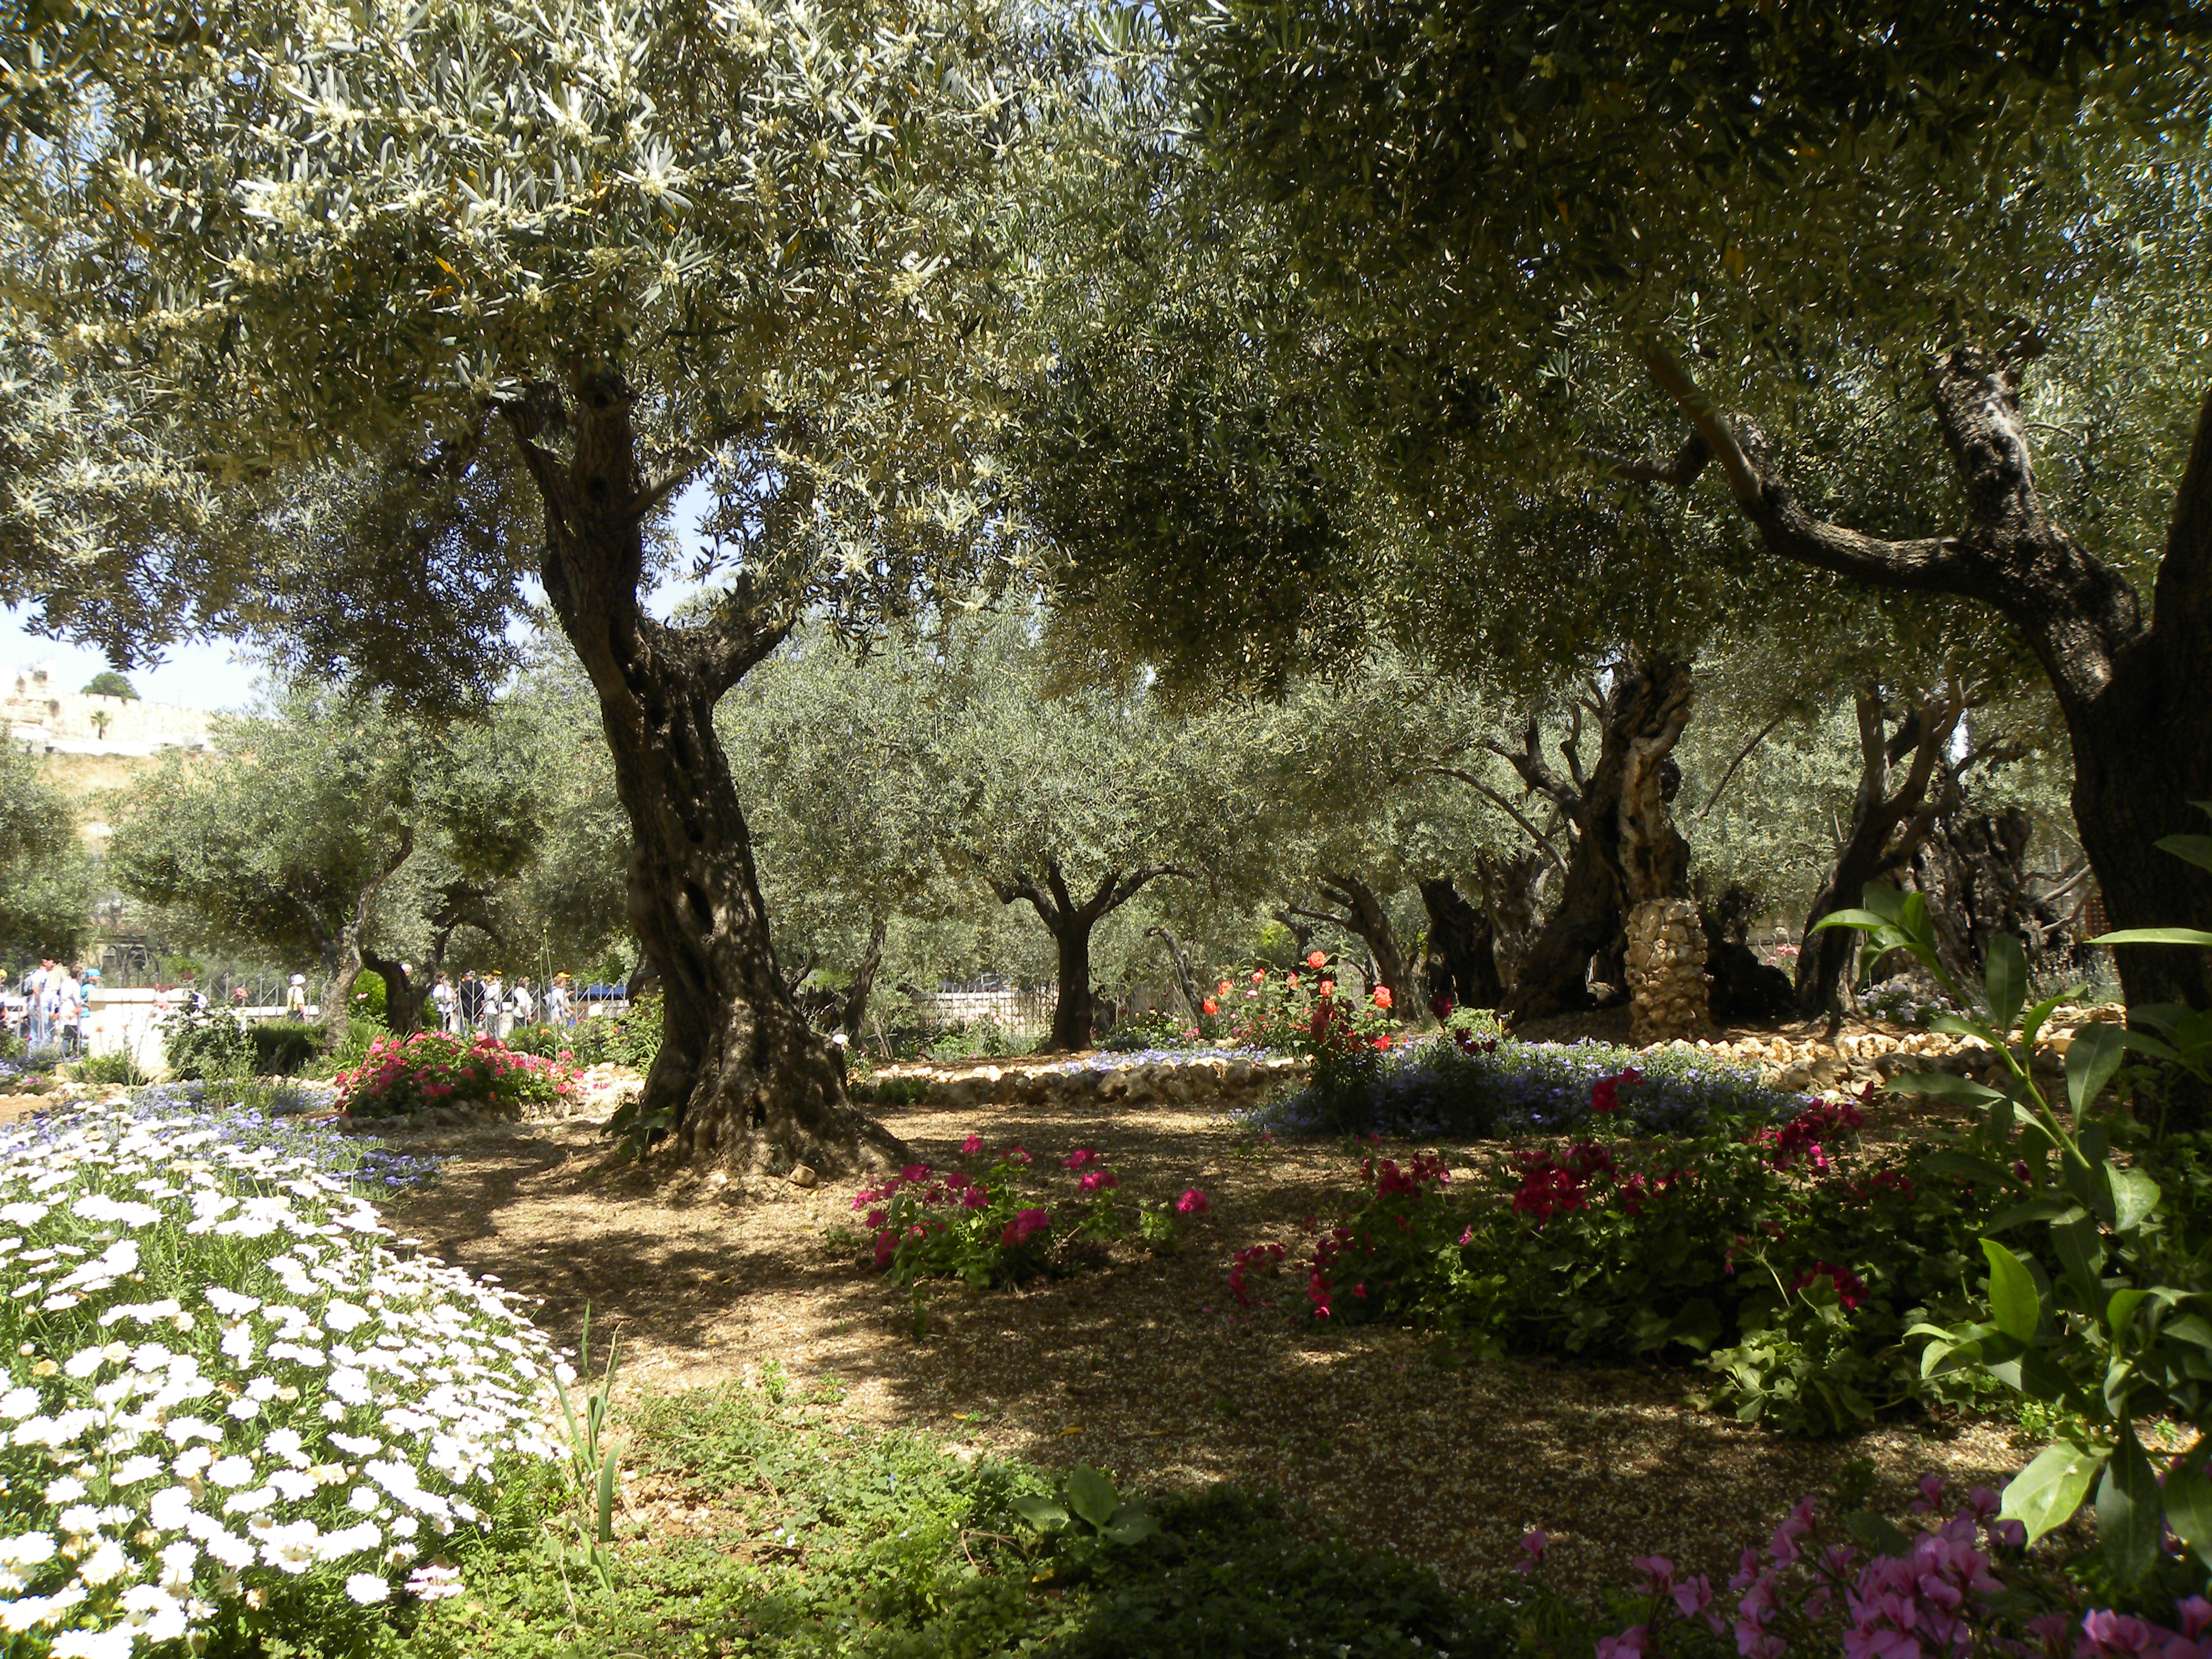 File:Olive trees in the traditional garden of Gethsemane (6409590197 ...